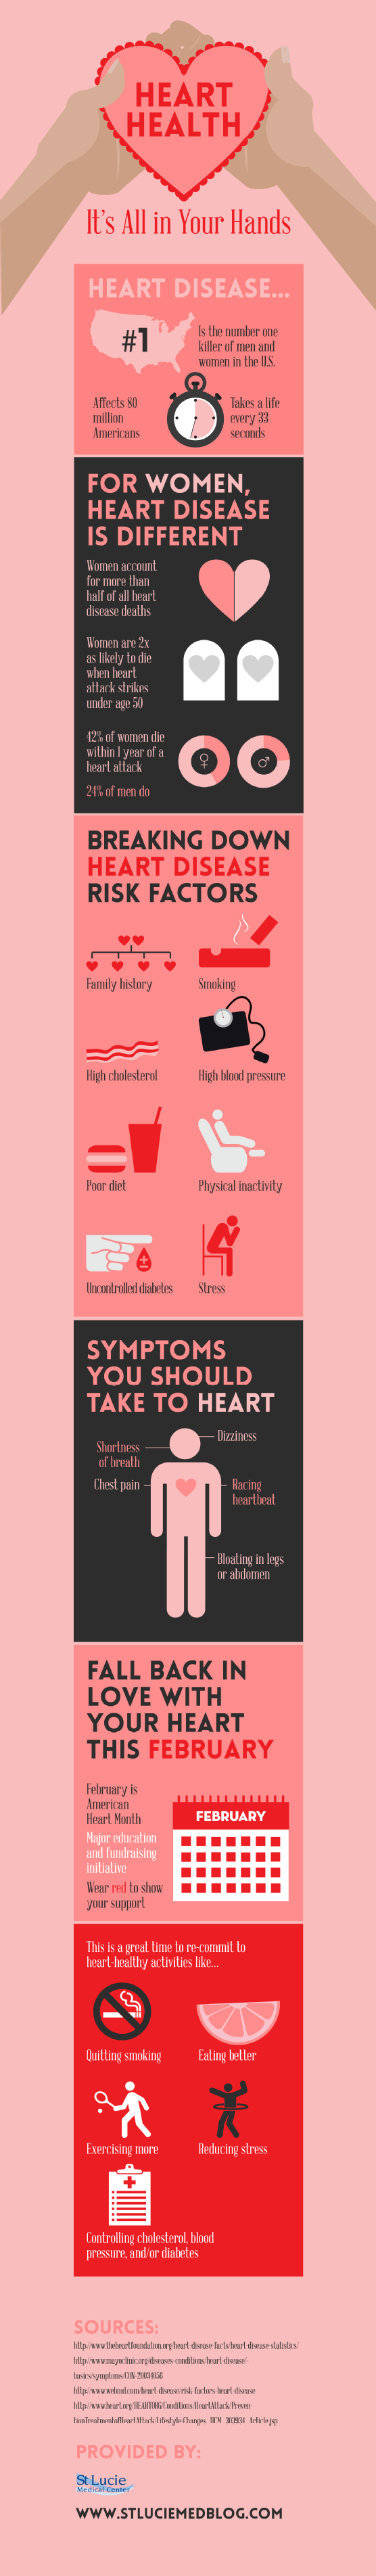 Infographic: Heart Health It's All In Your Hands